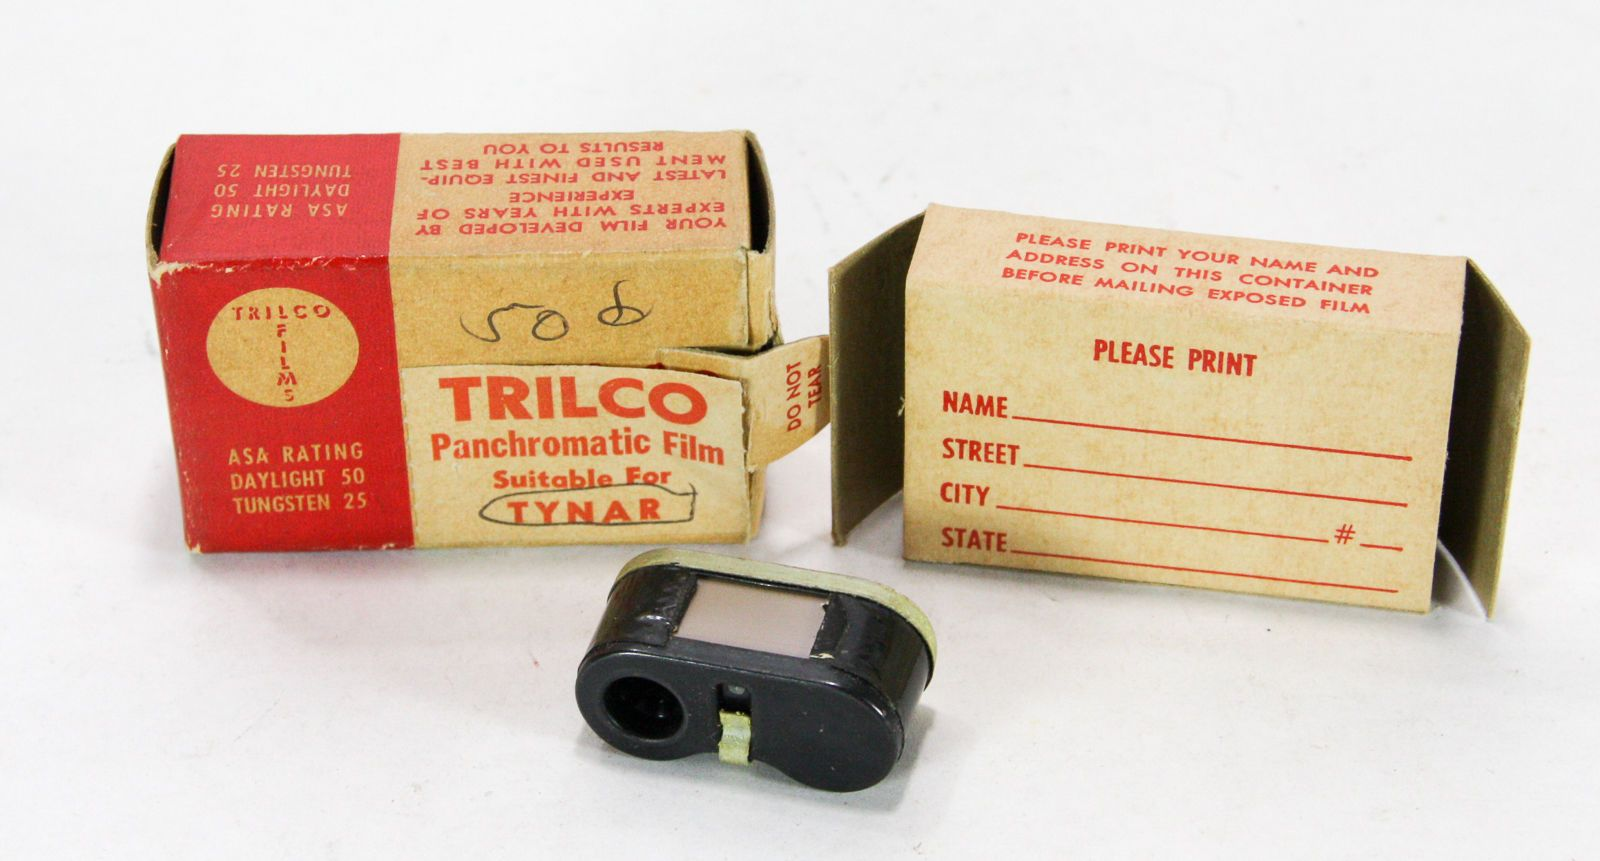 Trilco Panchromatic Film In Cassette For Tynar 16mm Spy Camera In Box 24 Exp